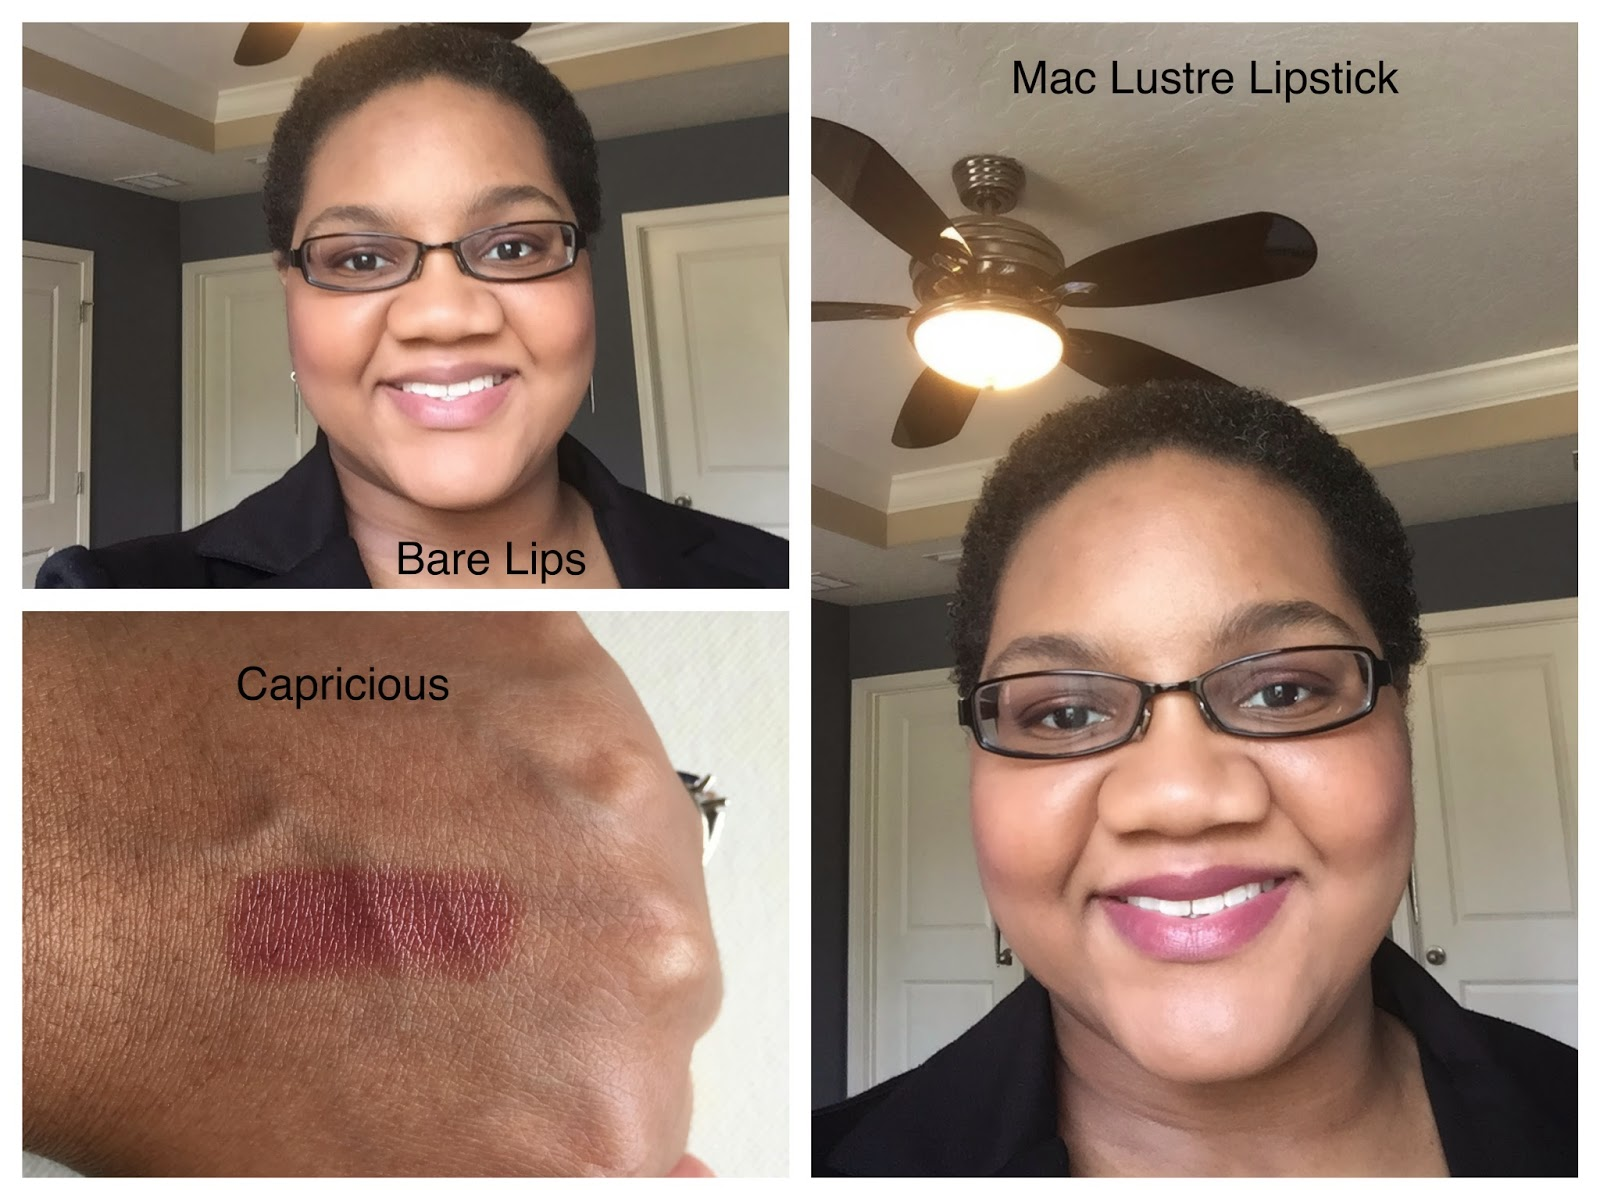 MAC Lustre Lipstick - Capricious on dark skin